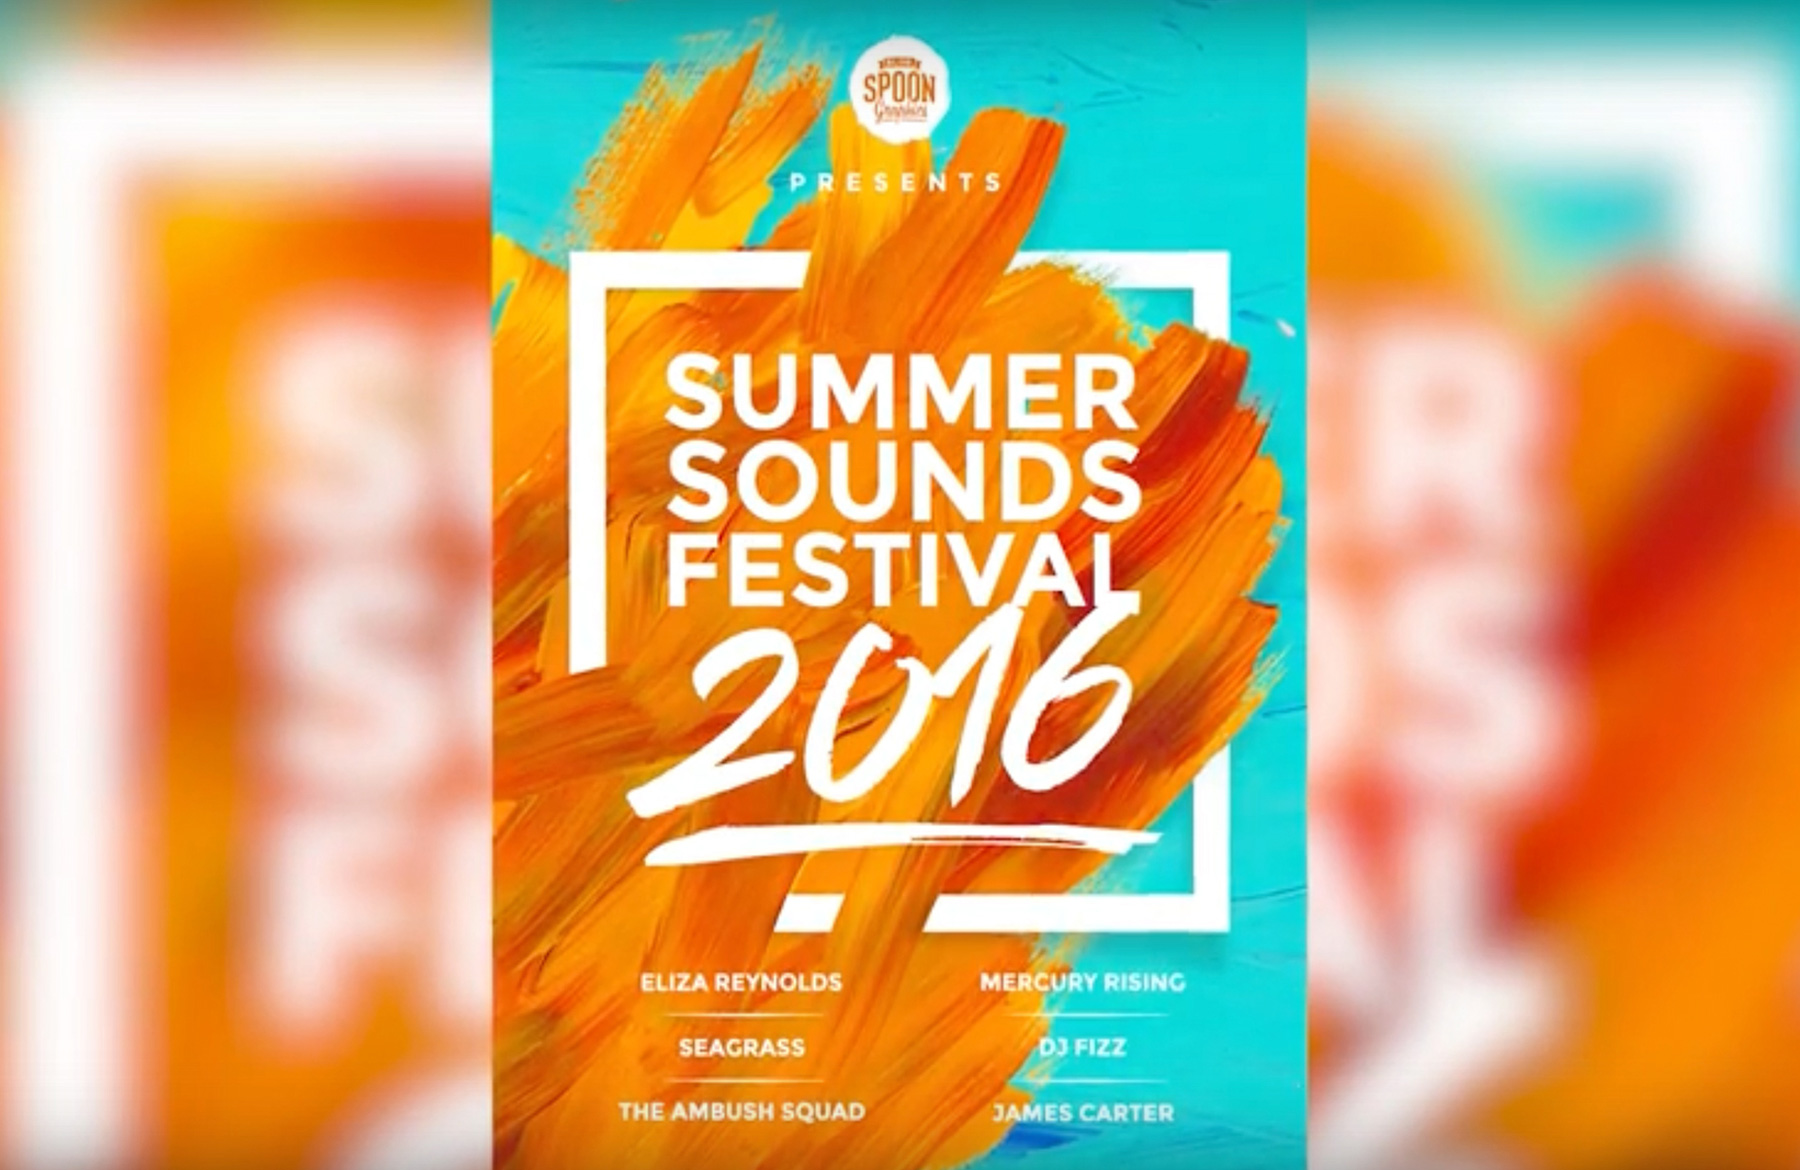 Poster design in photoshop - Create A Music Festival Poster Design In Photoshop